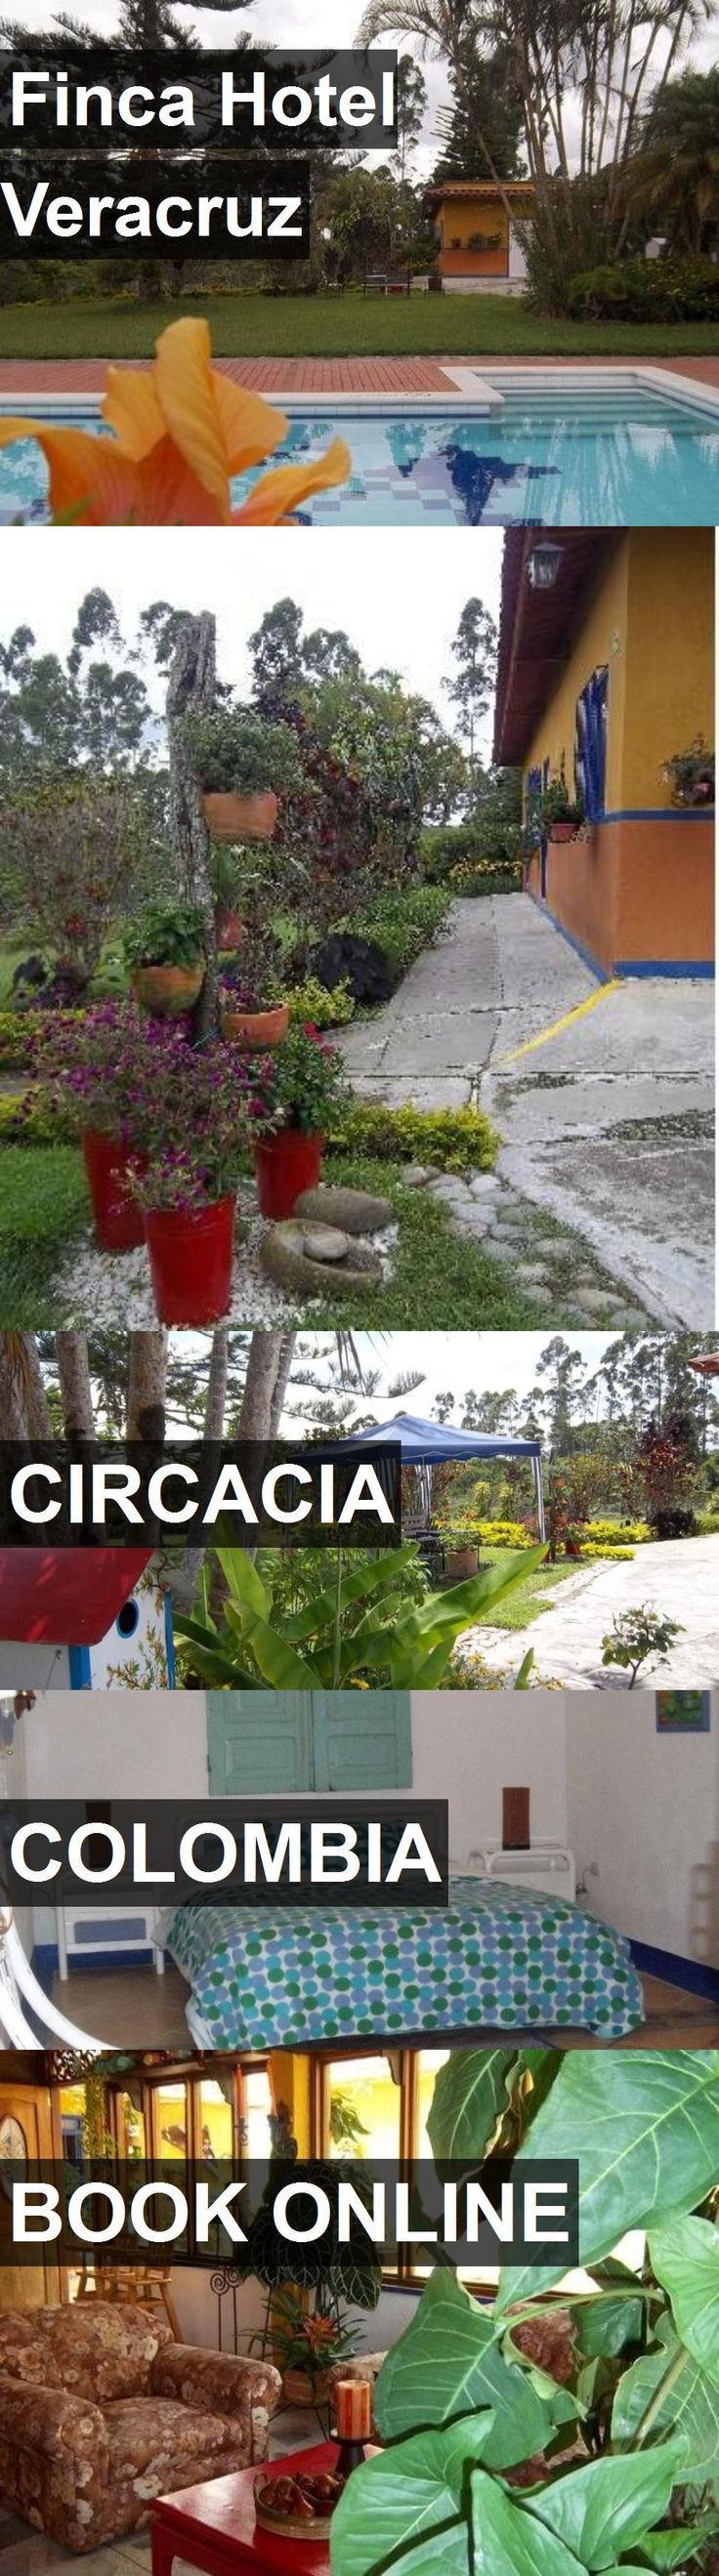 Finca Hotel Veracruz in Circacia, Colombia. For more information, photos, reviews and best prices please follow the link. #Colombia #Circacia #travel #vacation #hotel